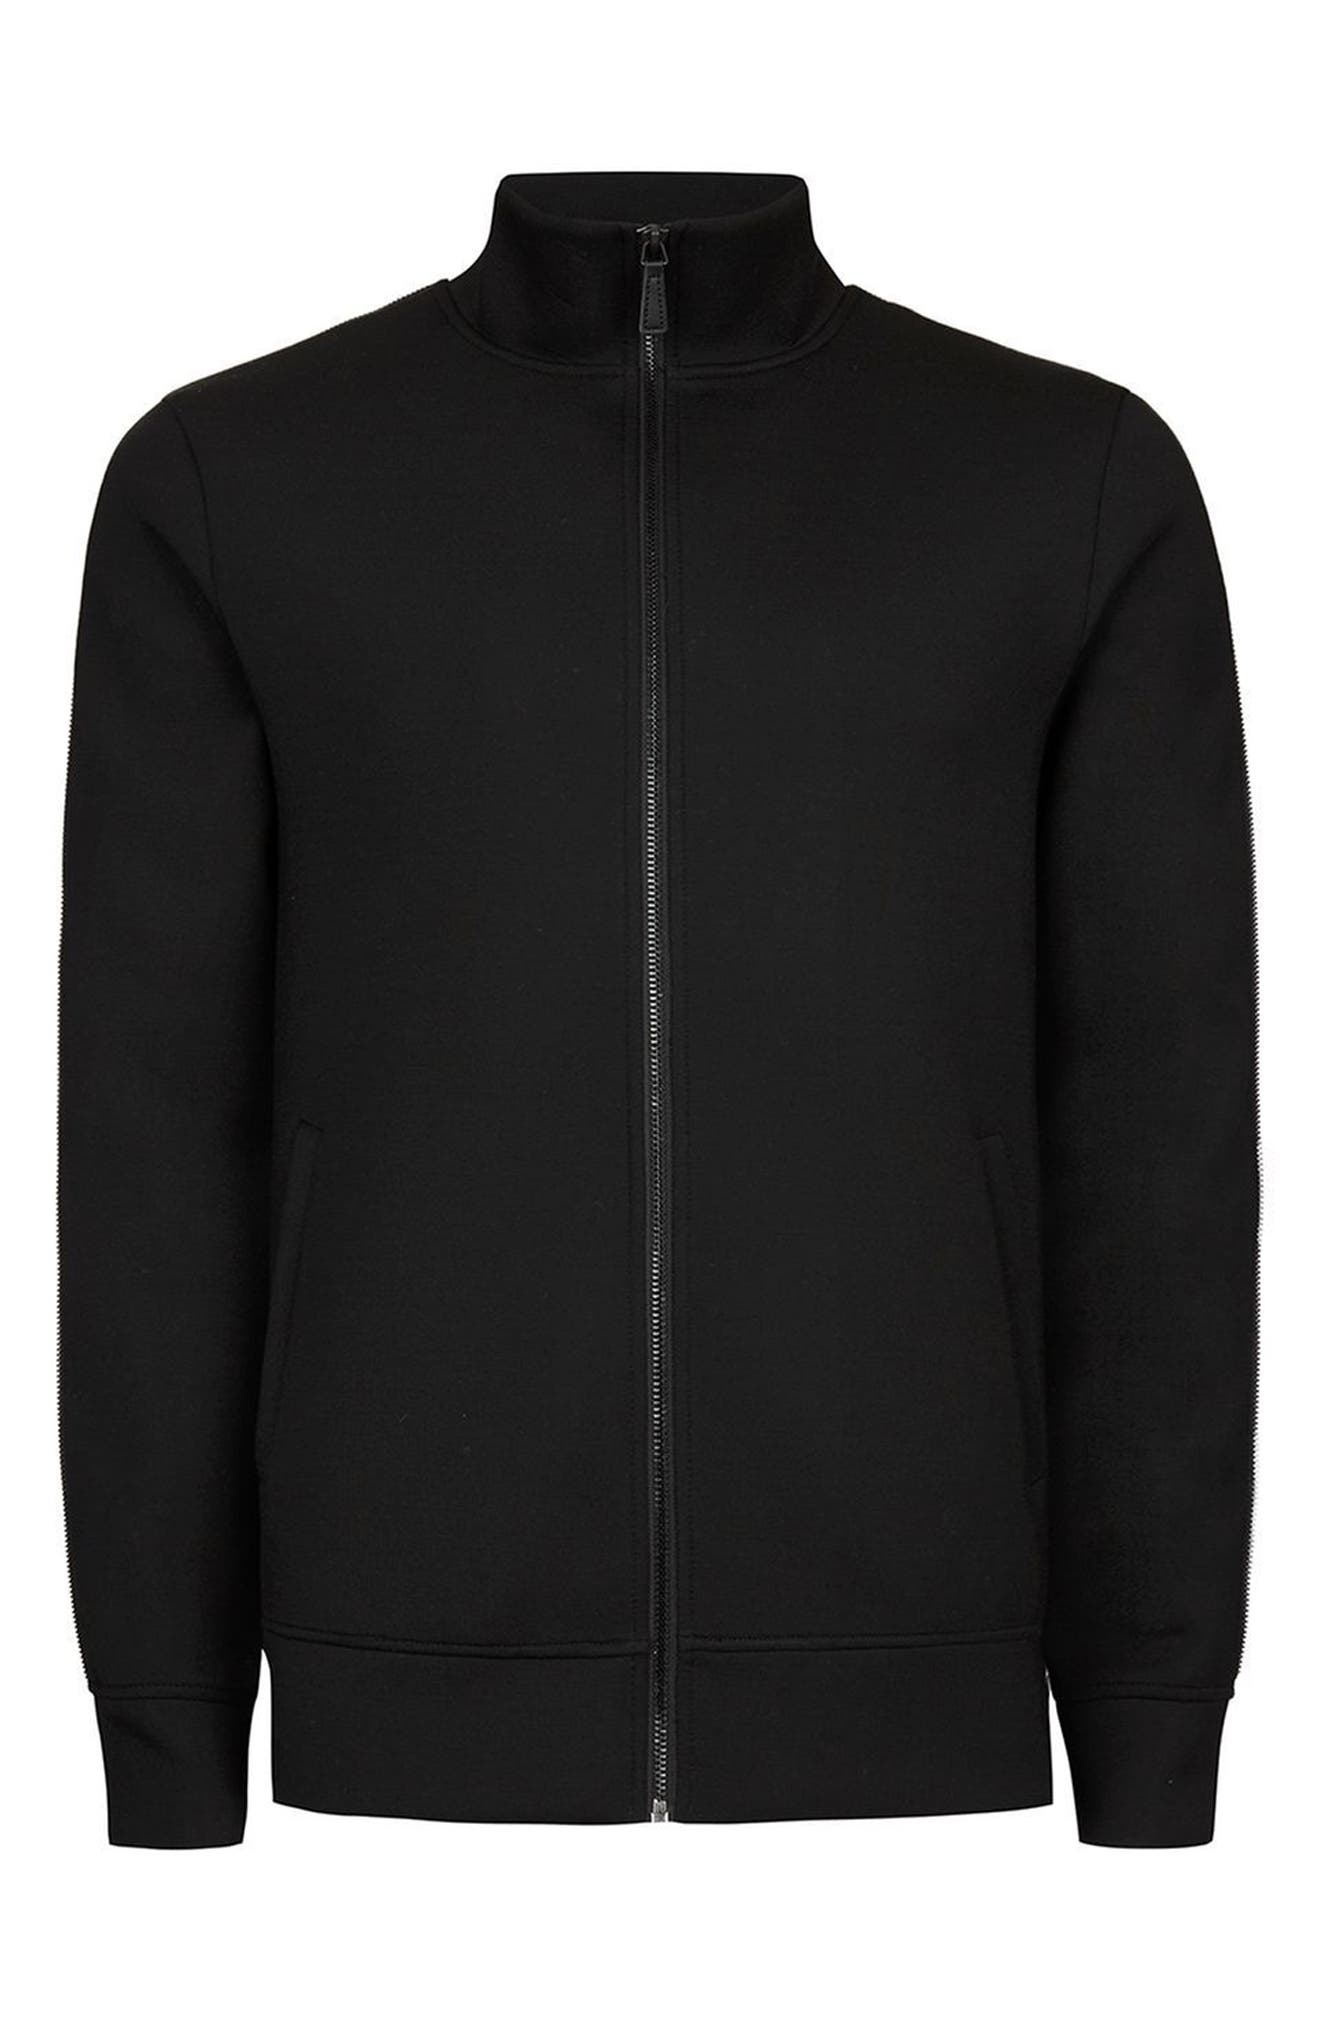 AAA Collection Zip Track Jacket,                             Alternate thumbnail 4, color,                             Black